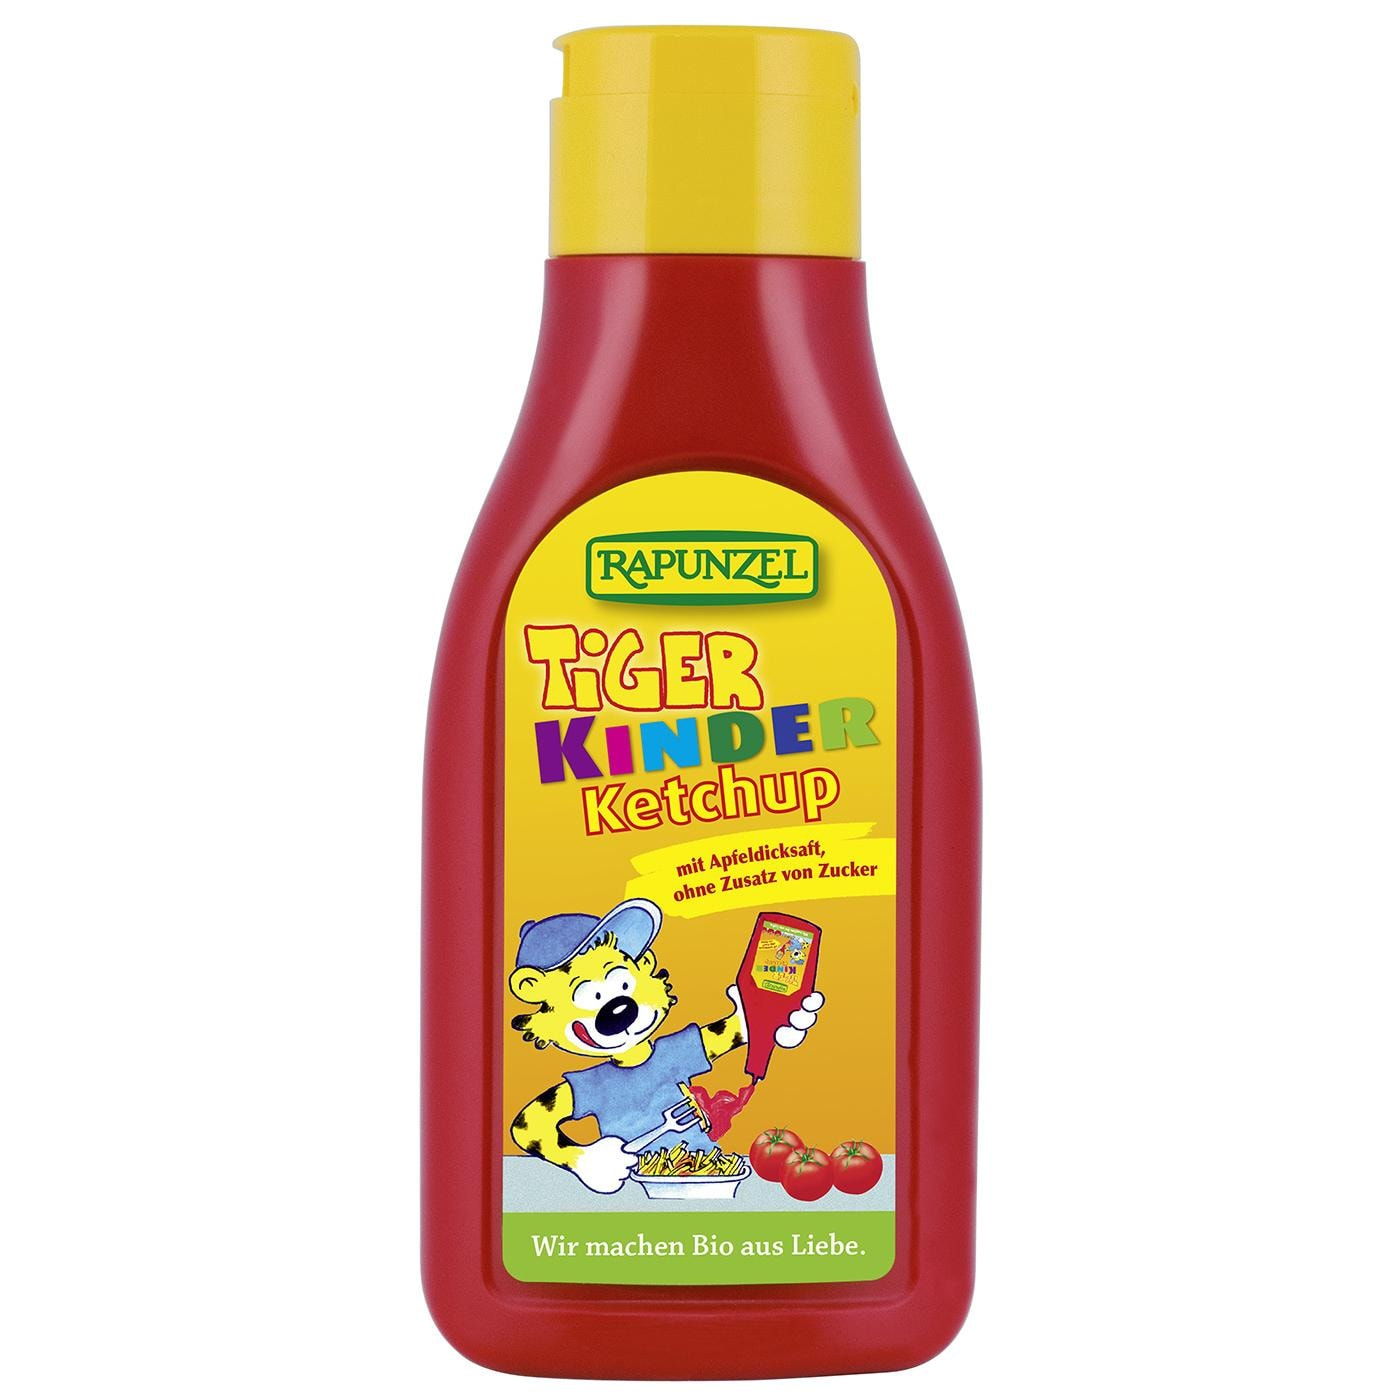 Rapunzel Bio Ketchup Tiger in Squeezeflasche 500ml